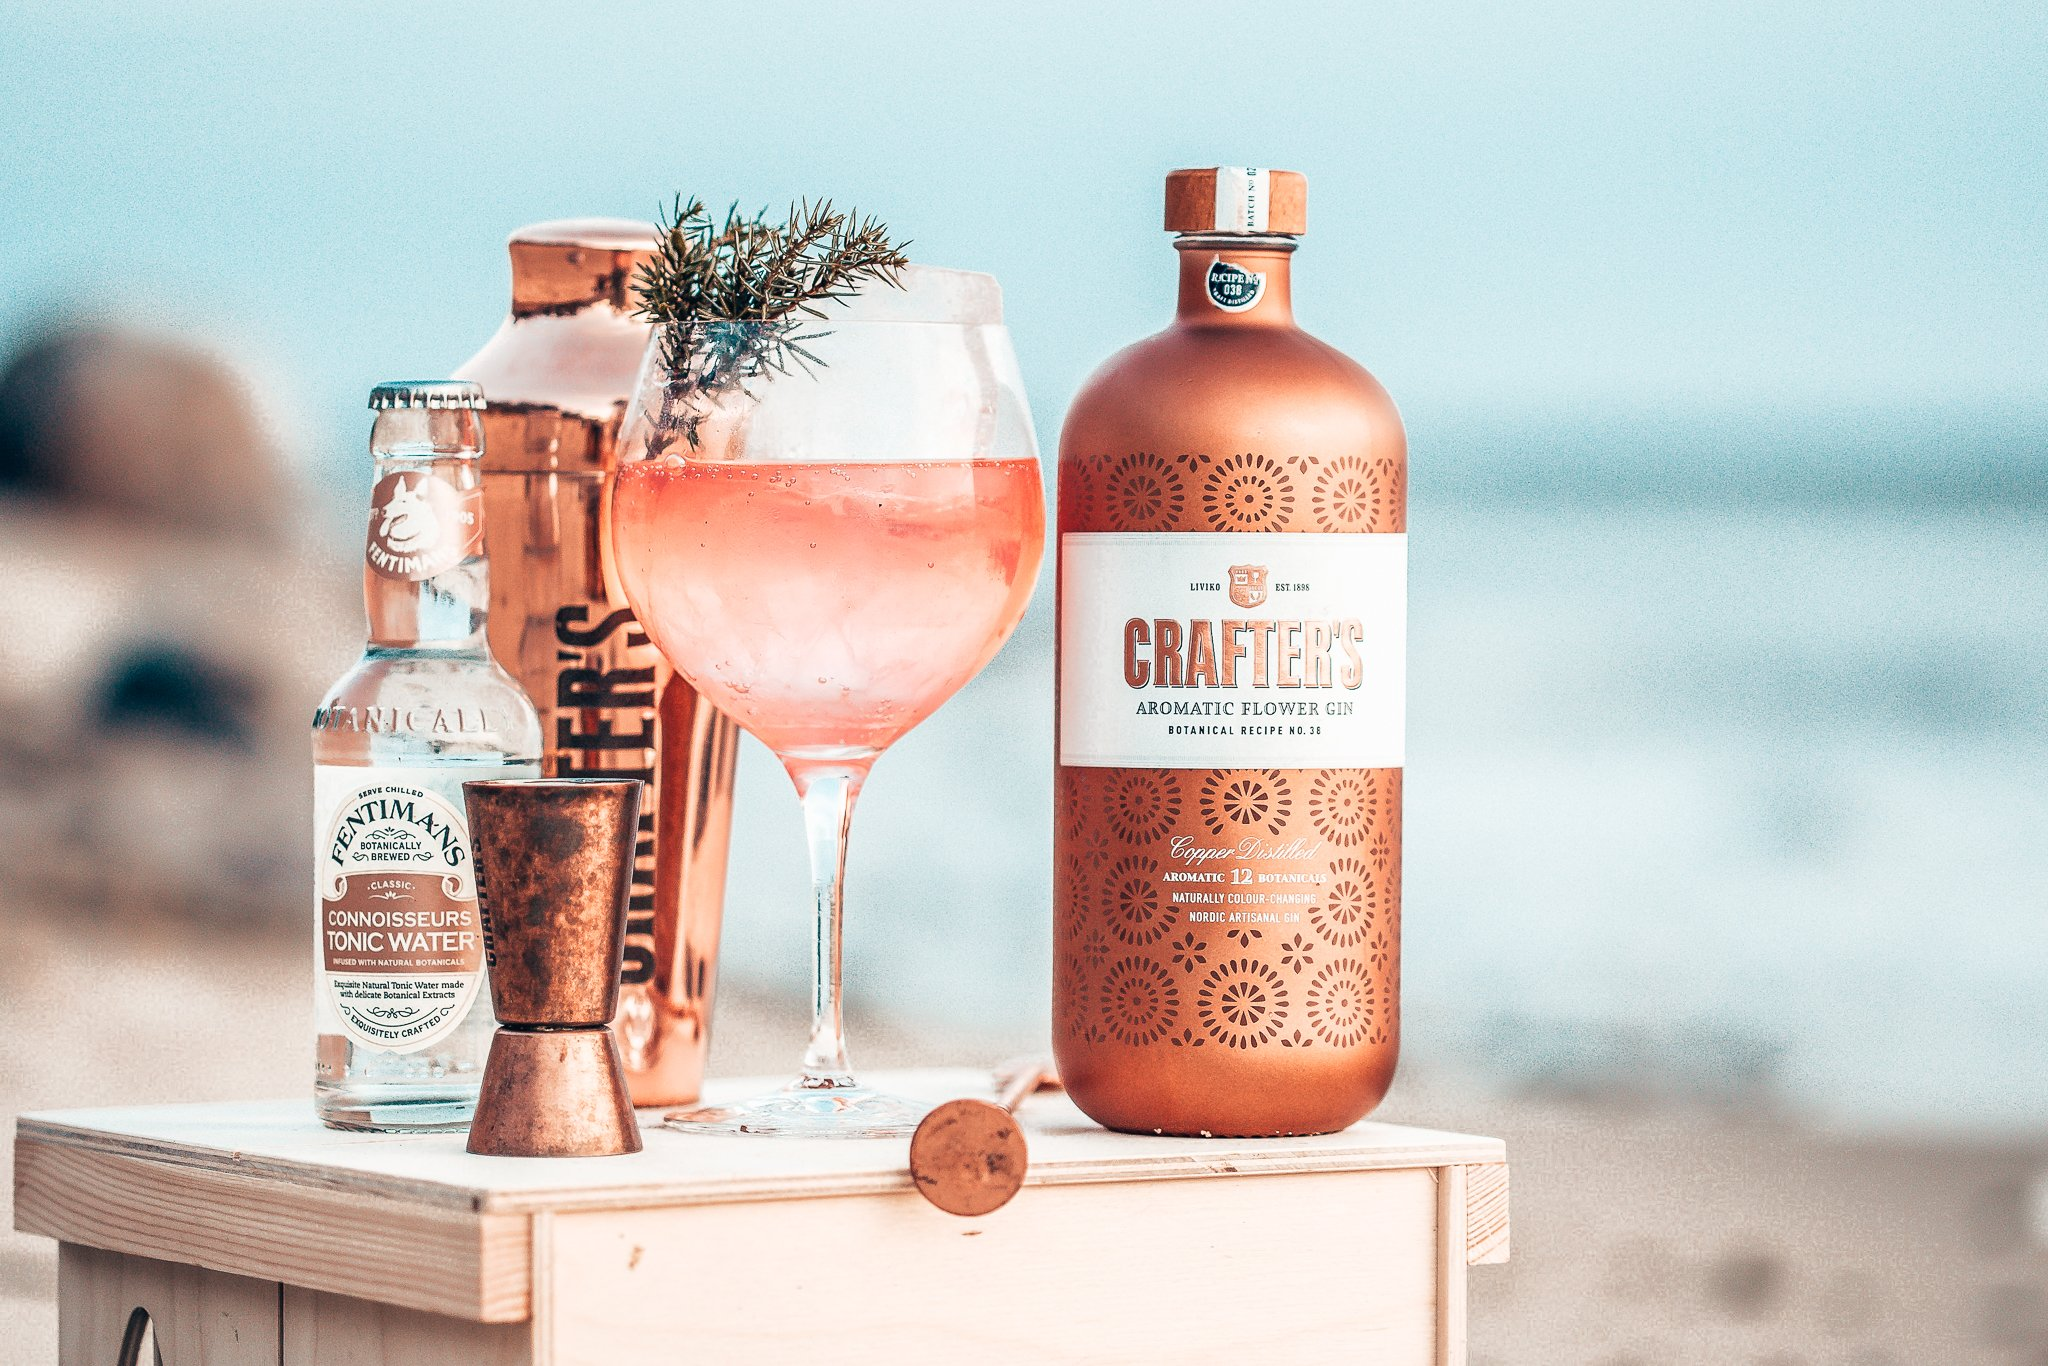 Crafter's Aromatic Flower Gin, Liviko Distillery, Alles over gin.